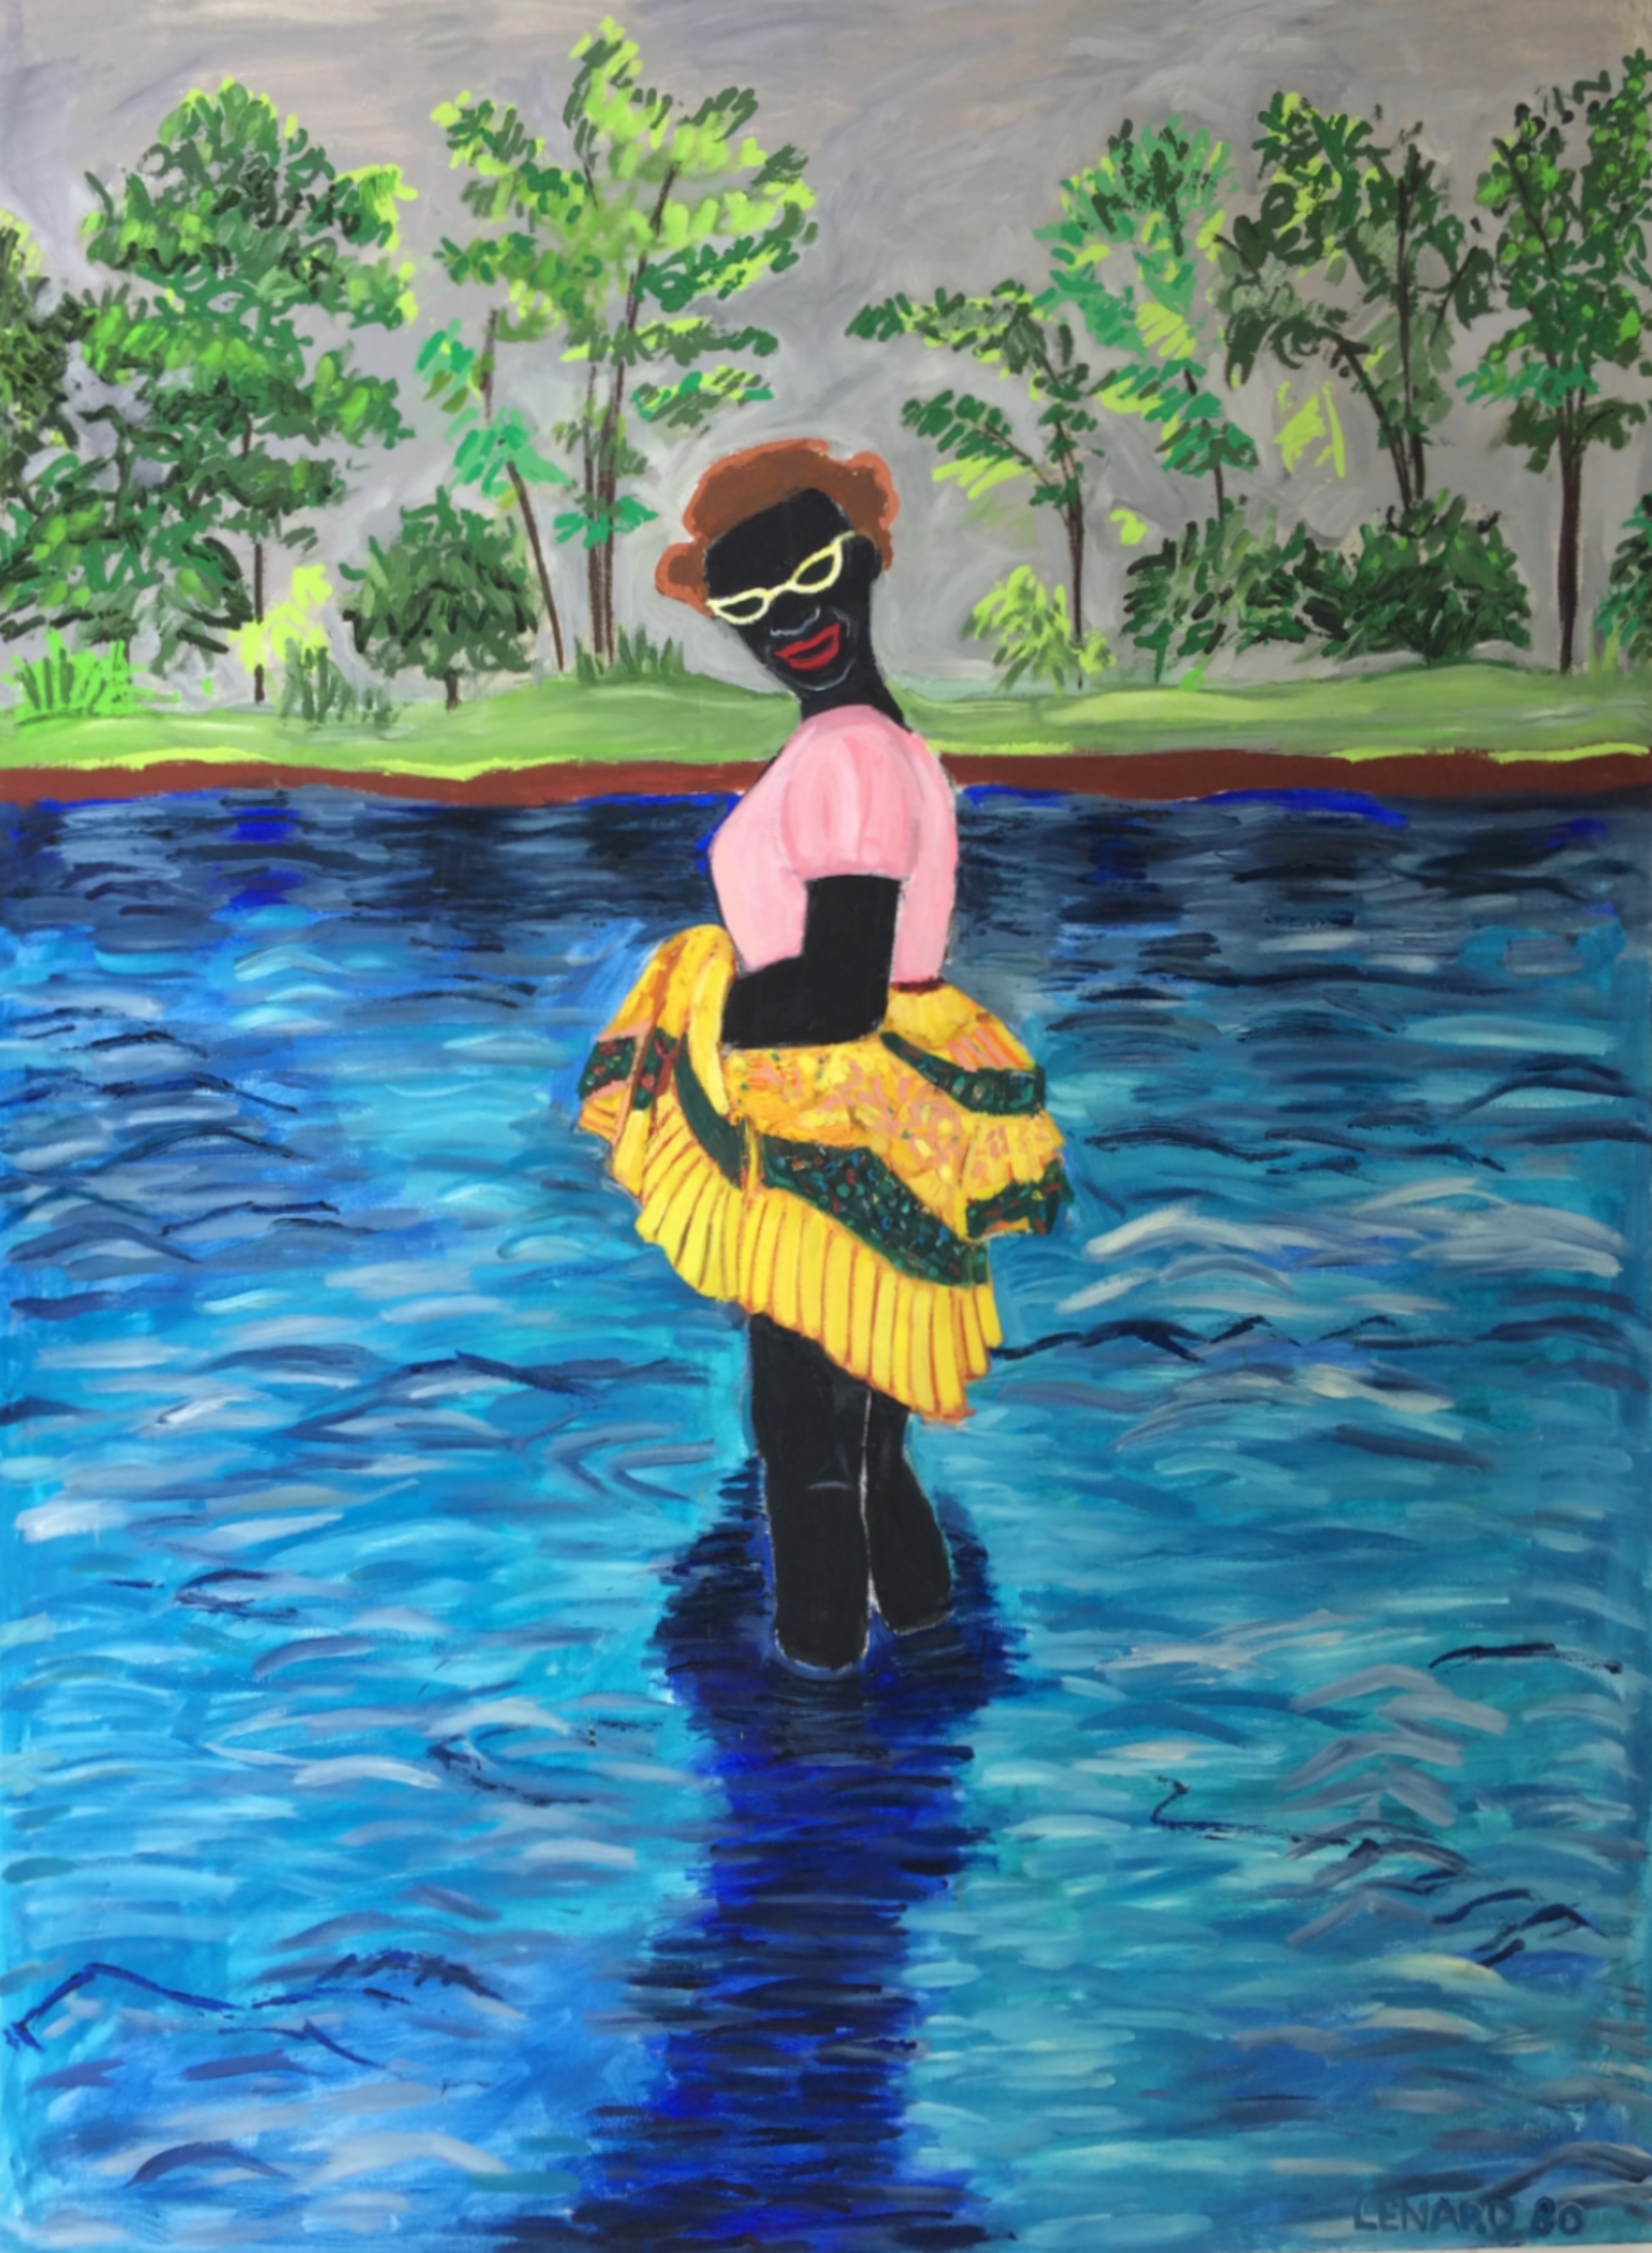 Woman In Pond.jpeg